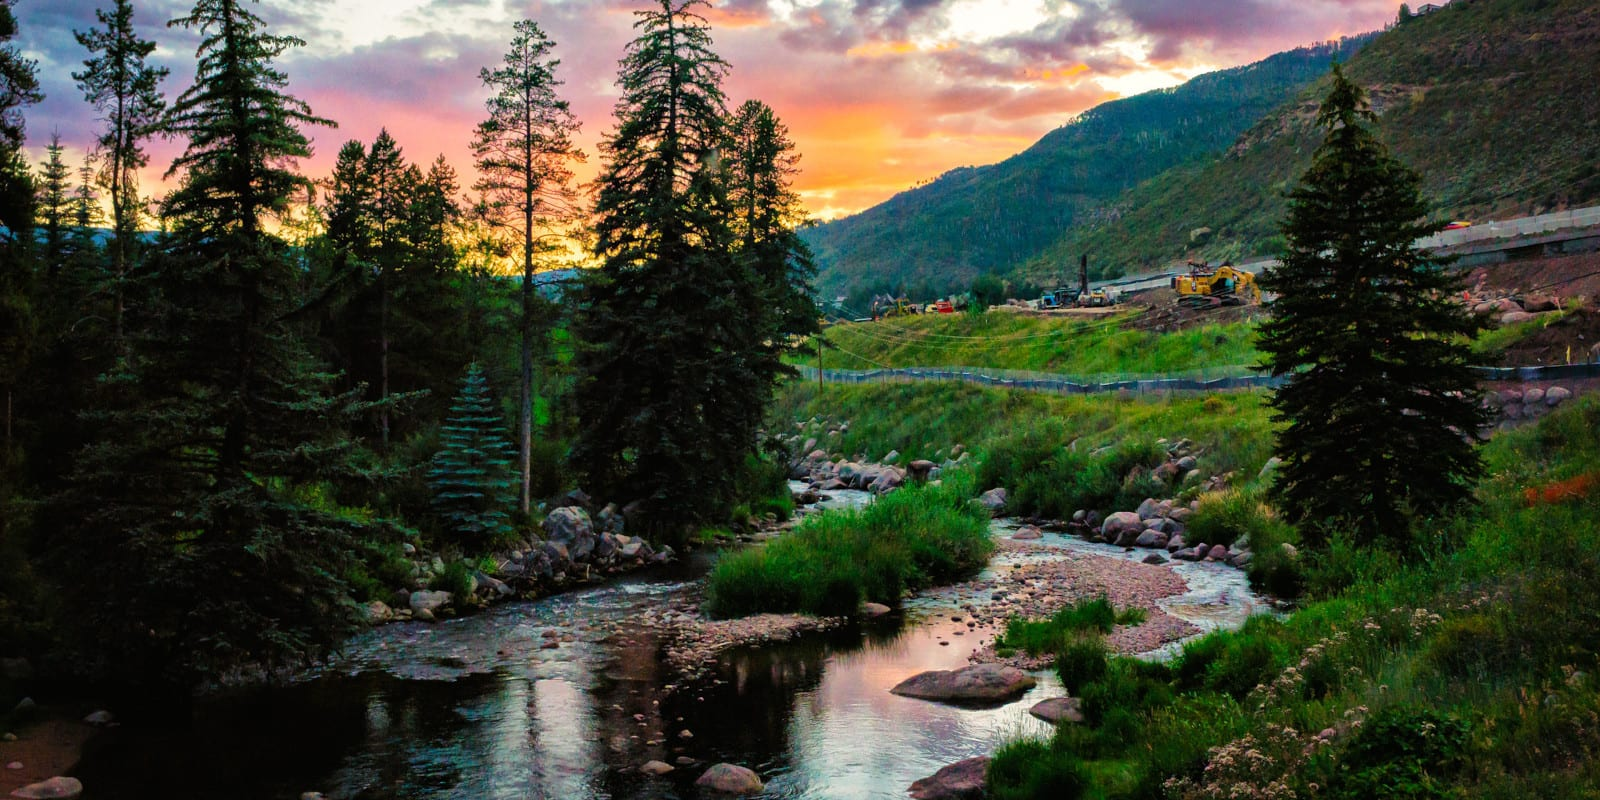 Image of Gore Creek at sunset